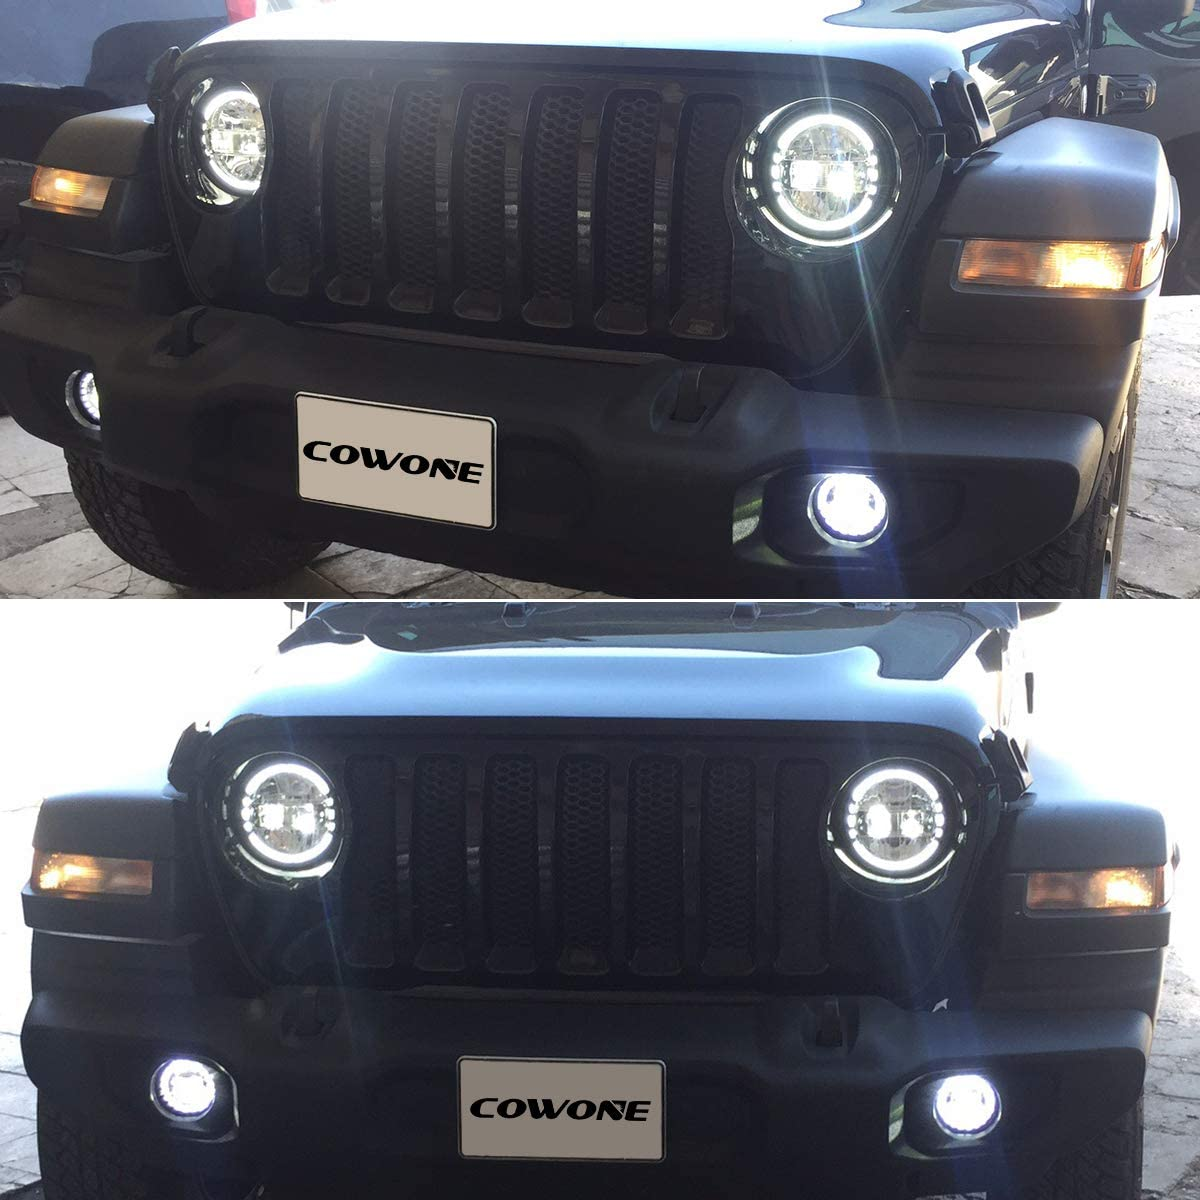 2020 Newest 7 inch Round LED Headlight Headlamps with Daytime Running Light DRL High Low Beam for Jeep Wrangler JK TJ LJ 97-2017 Hummber H1 H2